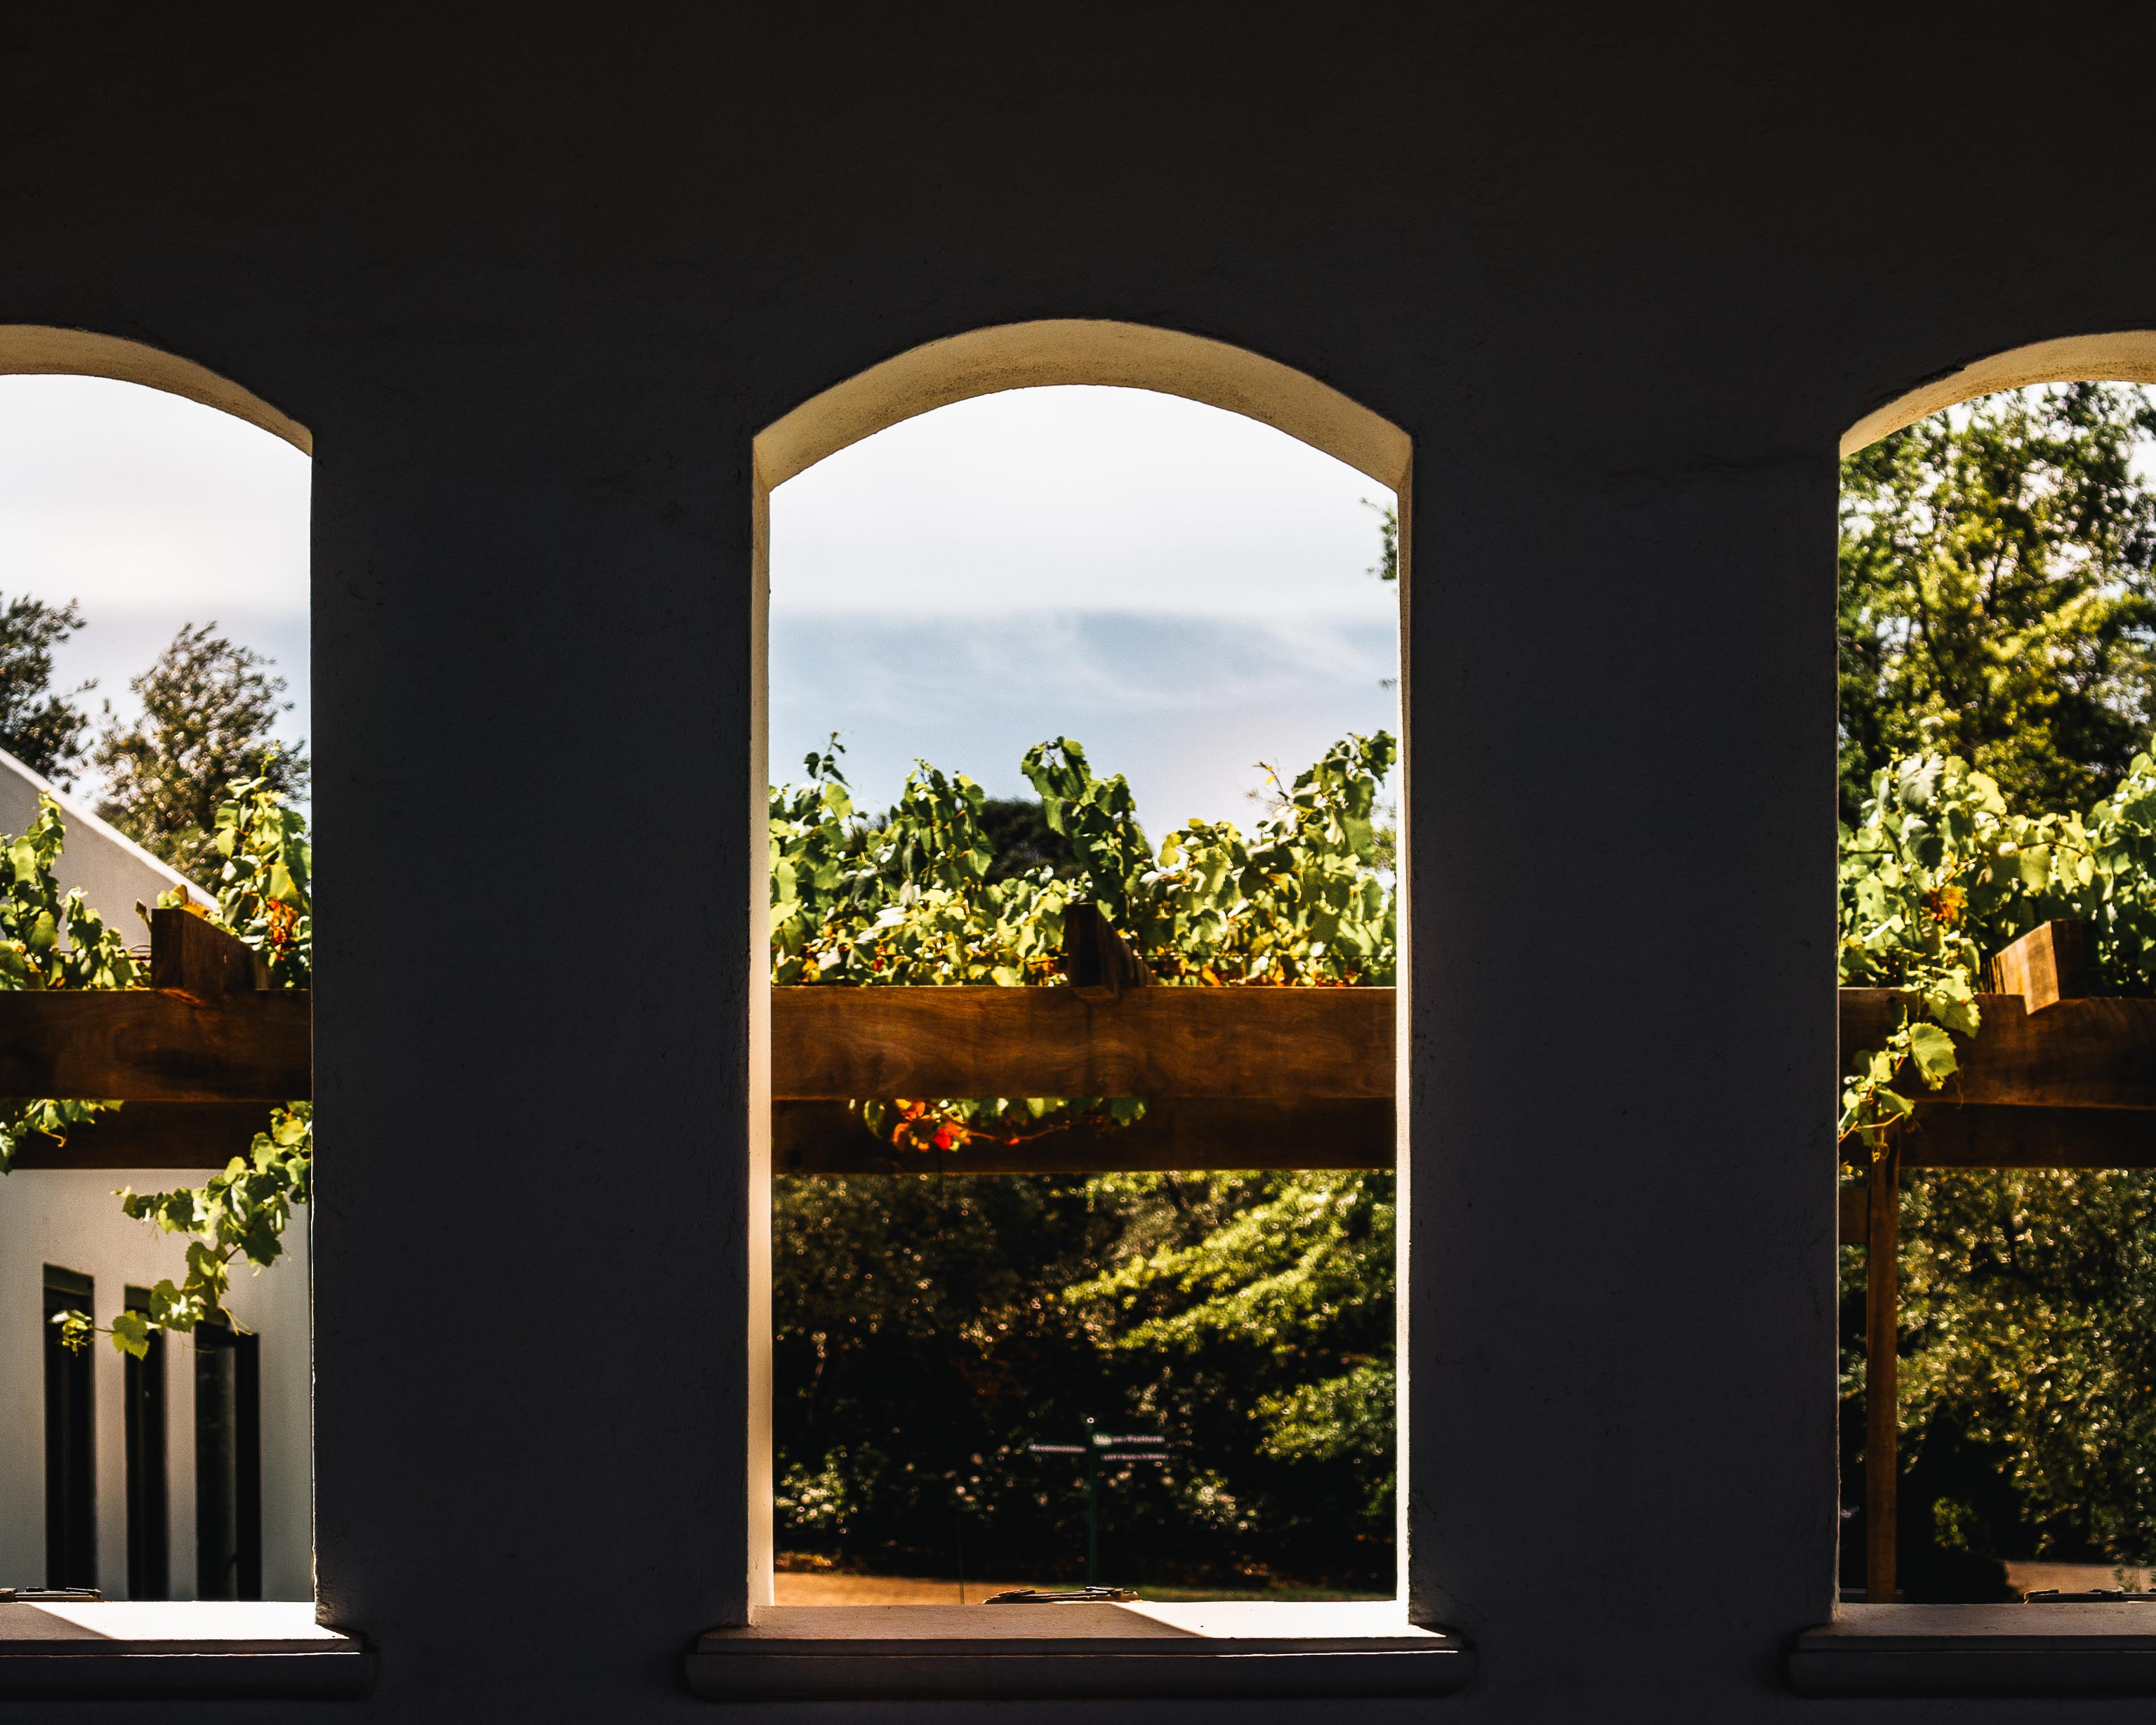 vredeenlust wine estate arches